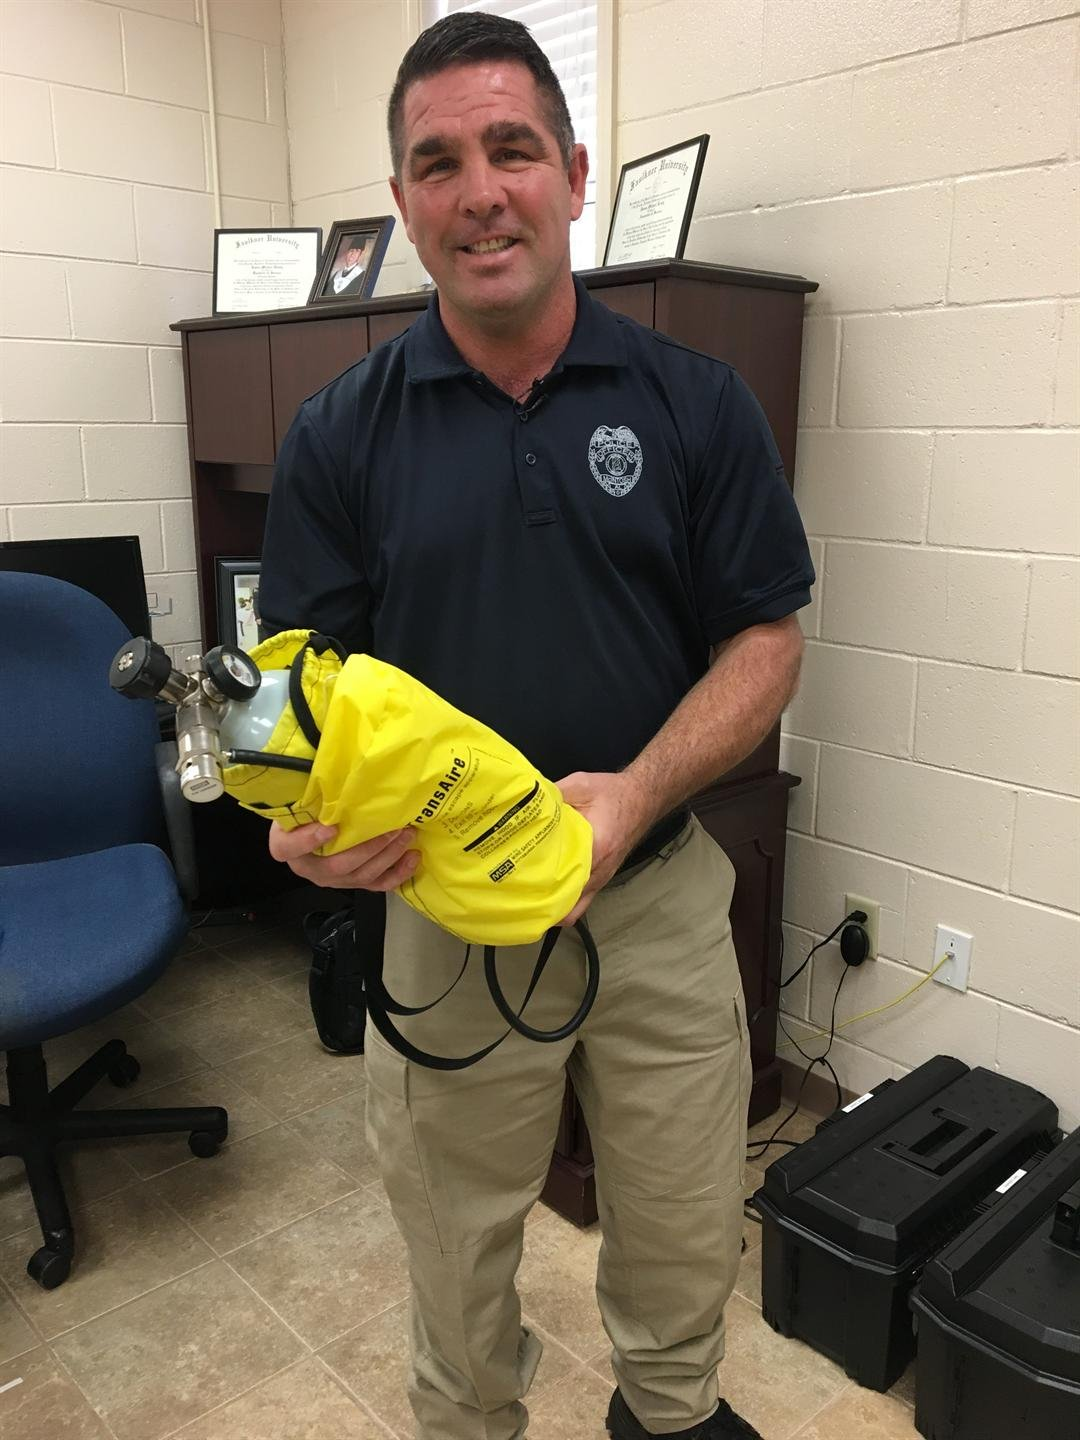 McIntosh Police Chief Mike Ready told FOX10 News he is happy to have new life-saving gear from Olin. (Kati Weis, FOX10 News)